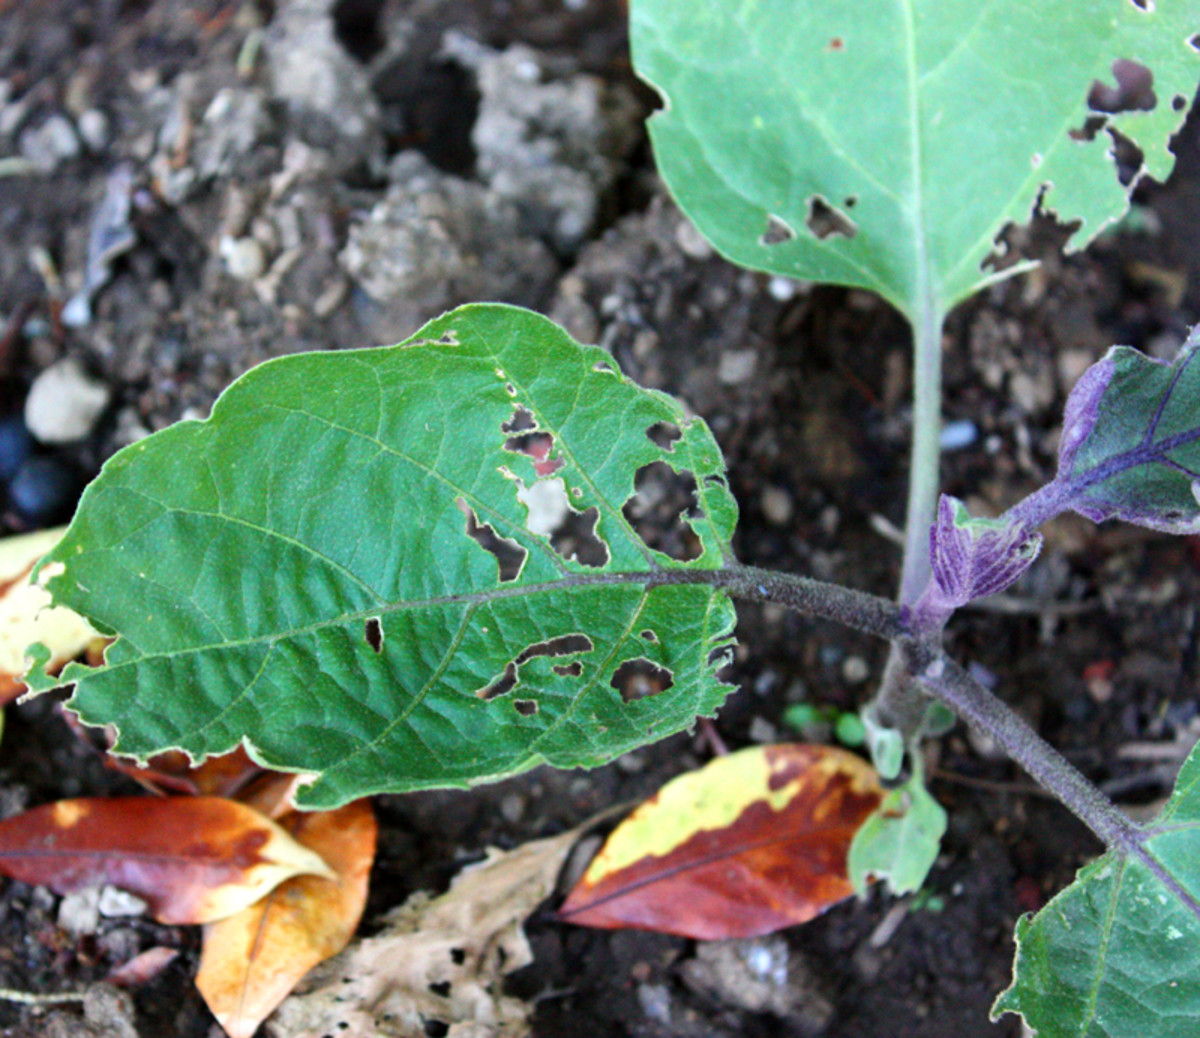 This picture shows the damage earwigs and slugs did to one of my eggplant bushes. If left untreated, this plant would have died within weeks.